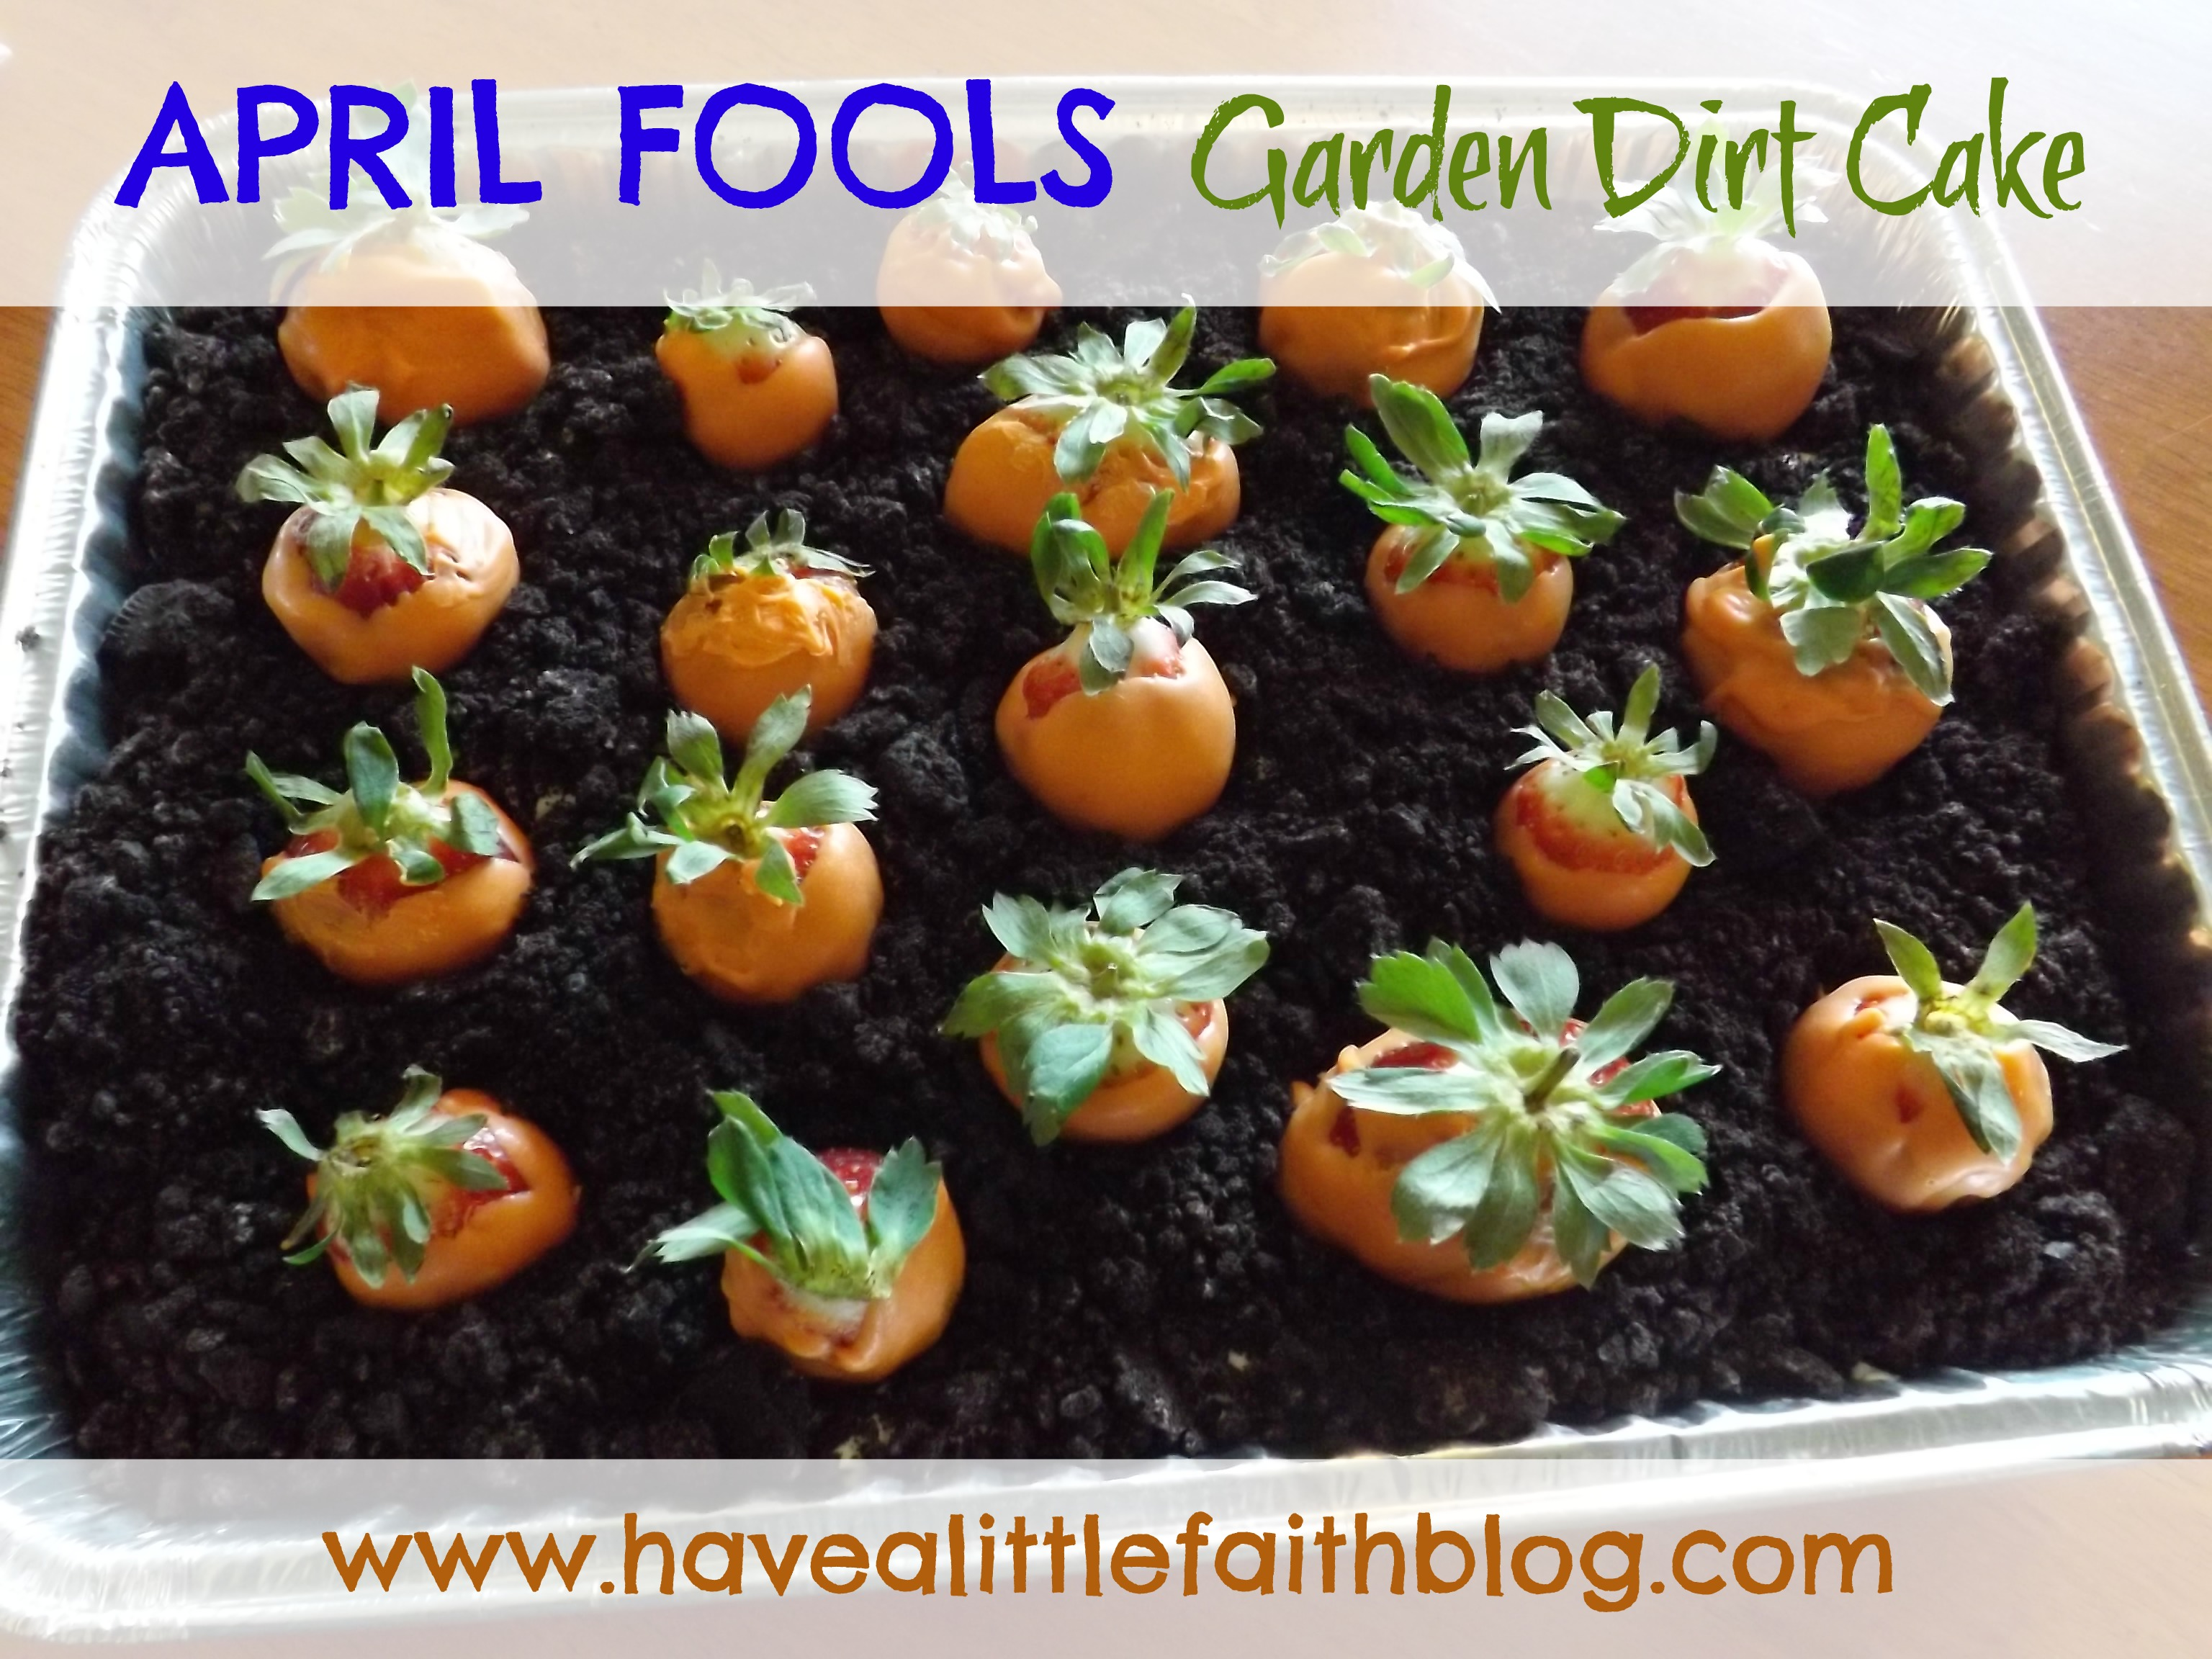 start by making sure you have all the ingredients you need for this deviously delicious treat - Garden Dirt